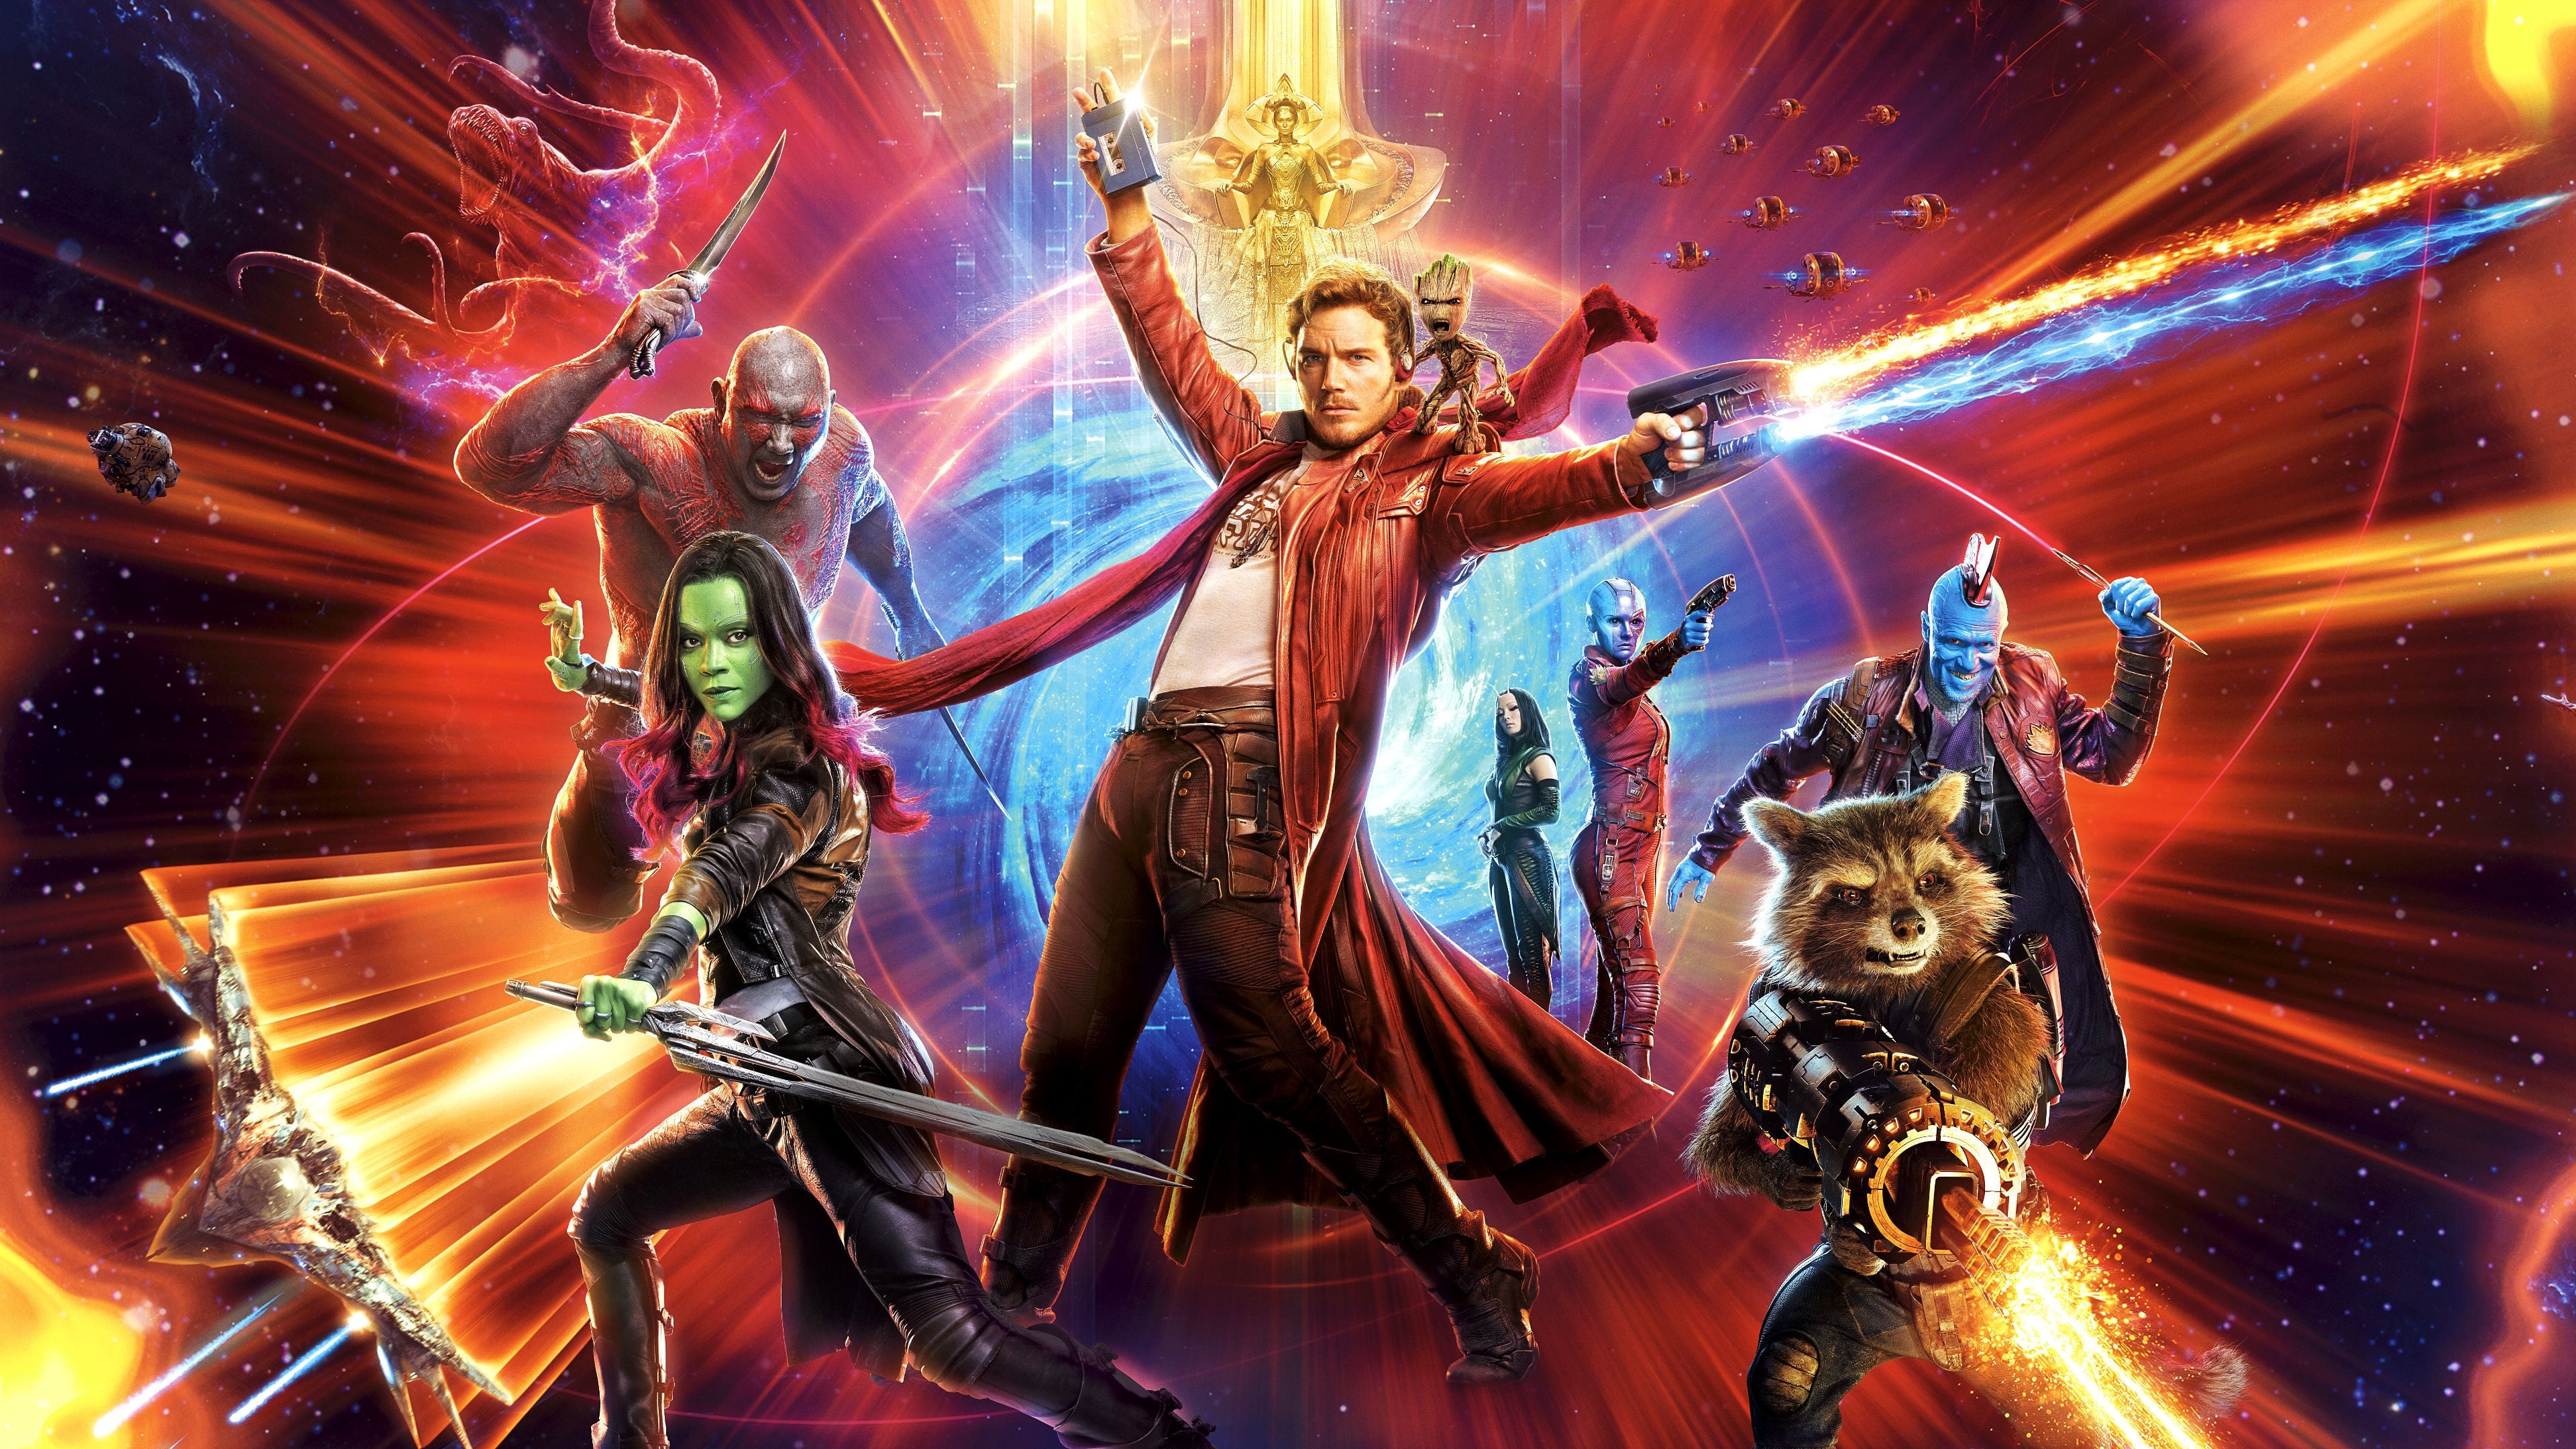 Guardians of the Galaxy Vol. 2 [2017]